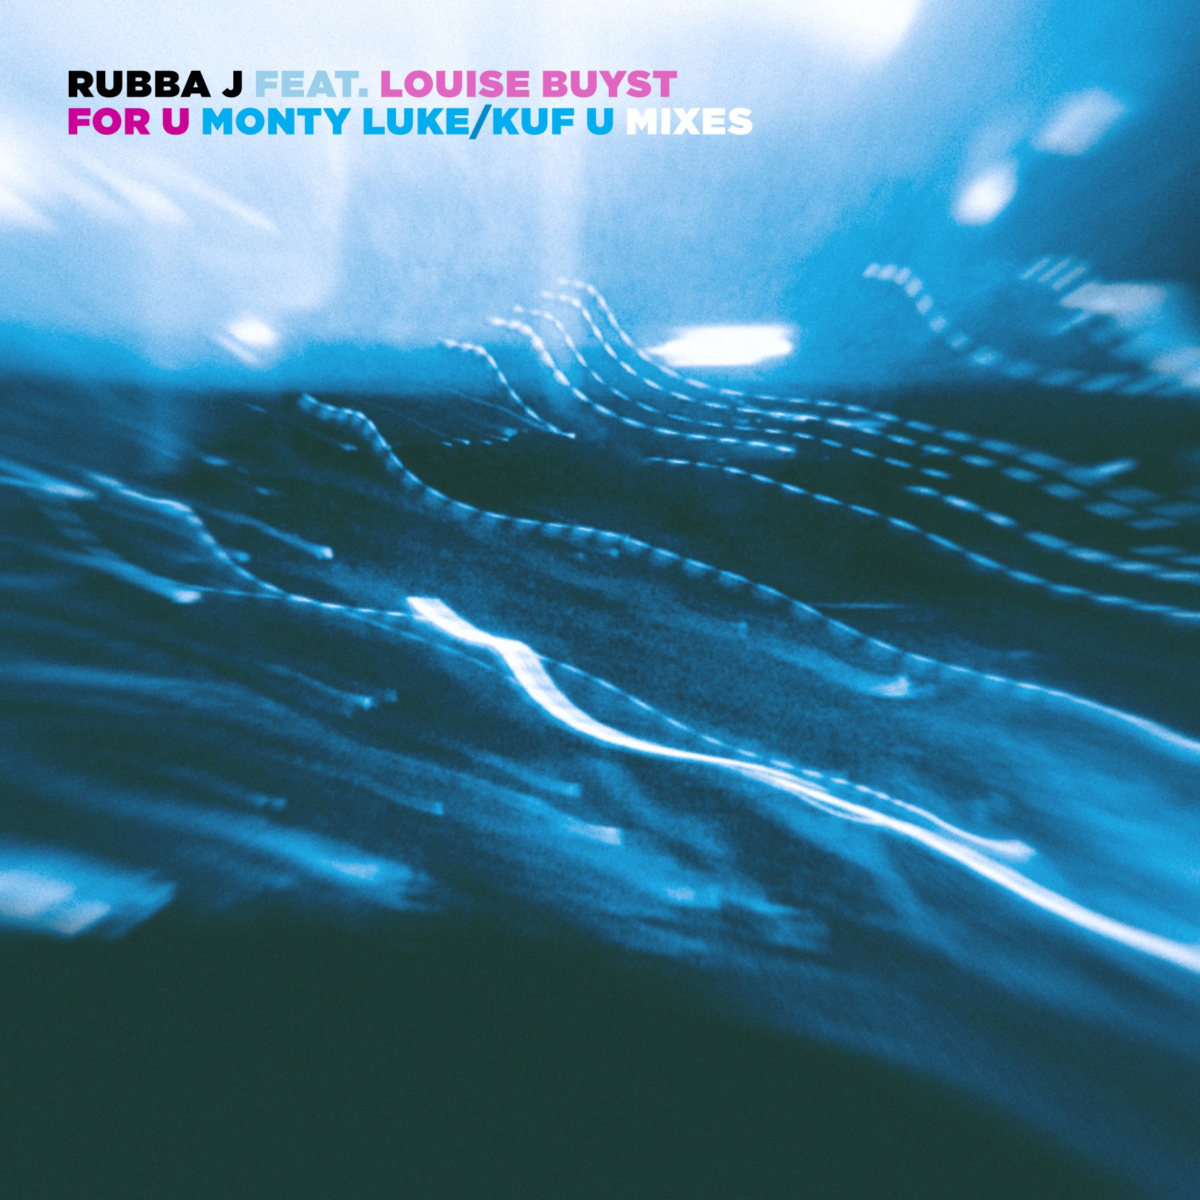 VIZ020 Rubba J feat. Louise Buyst - For U